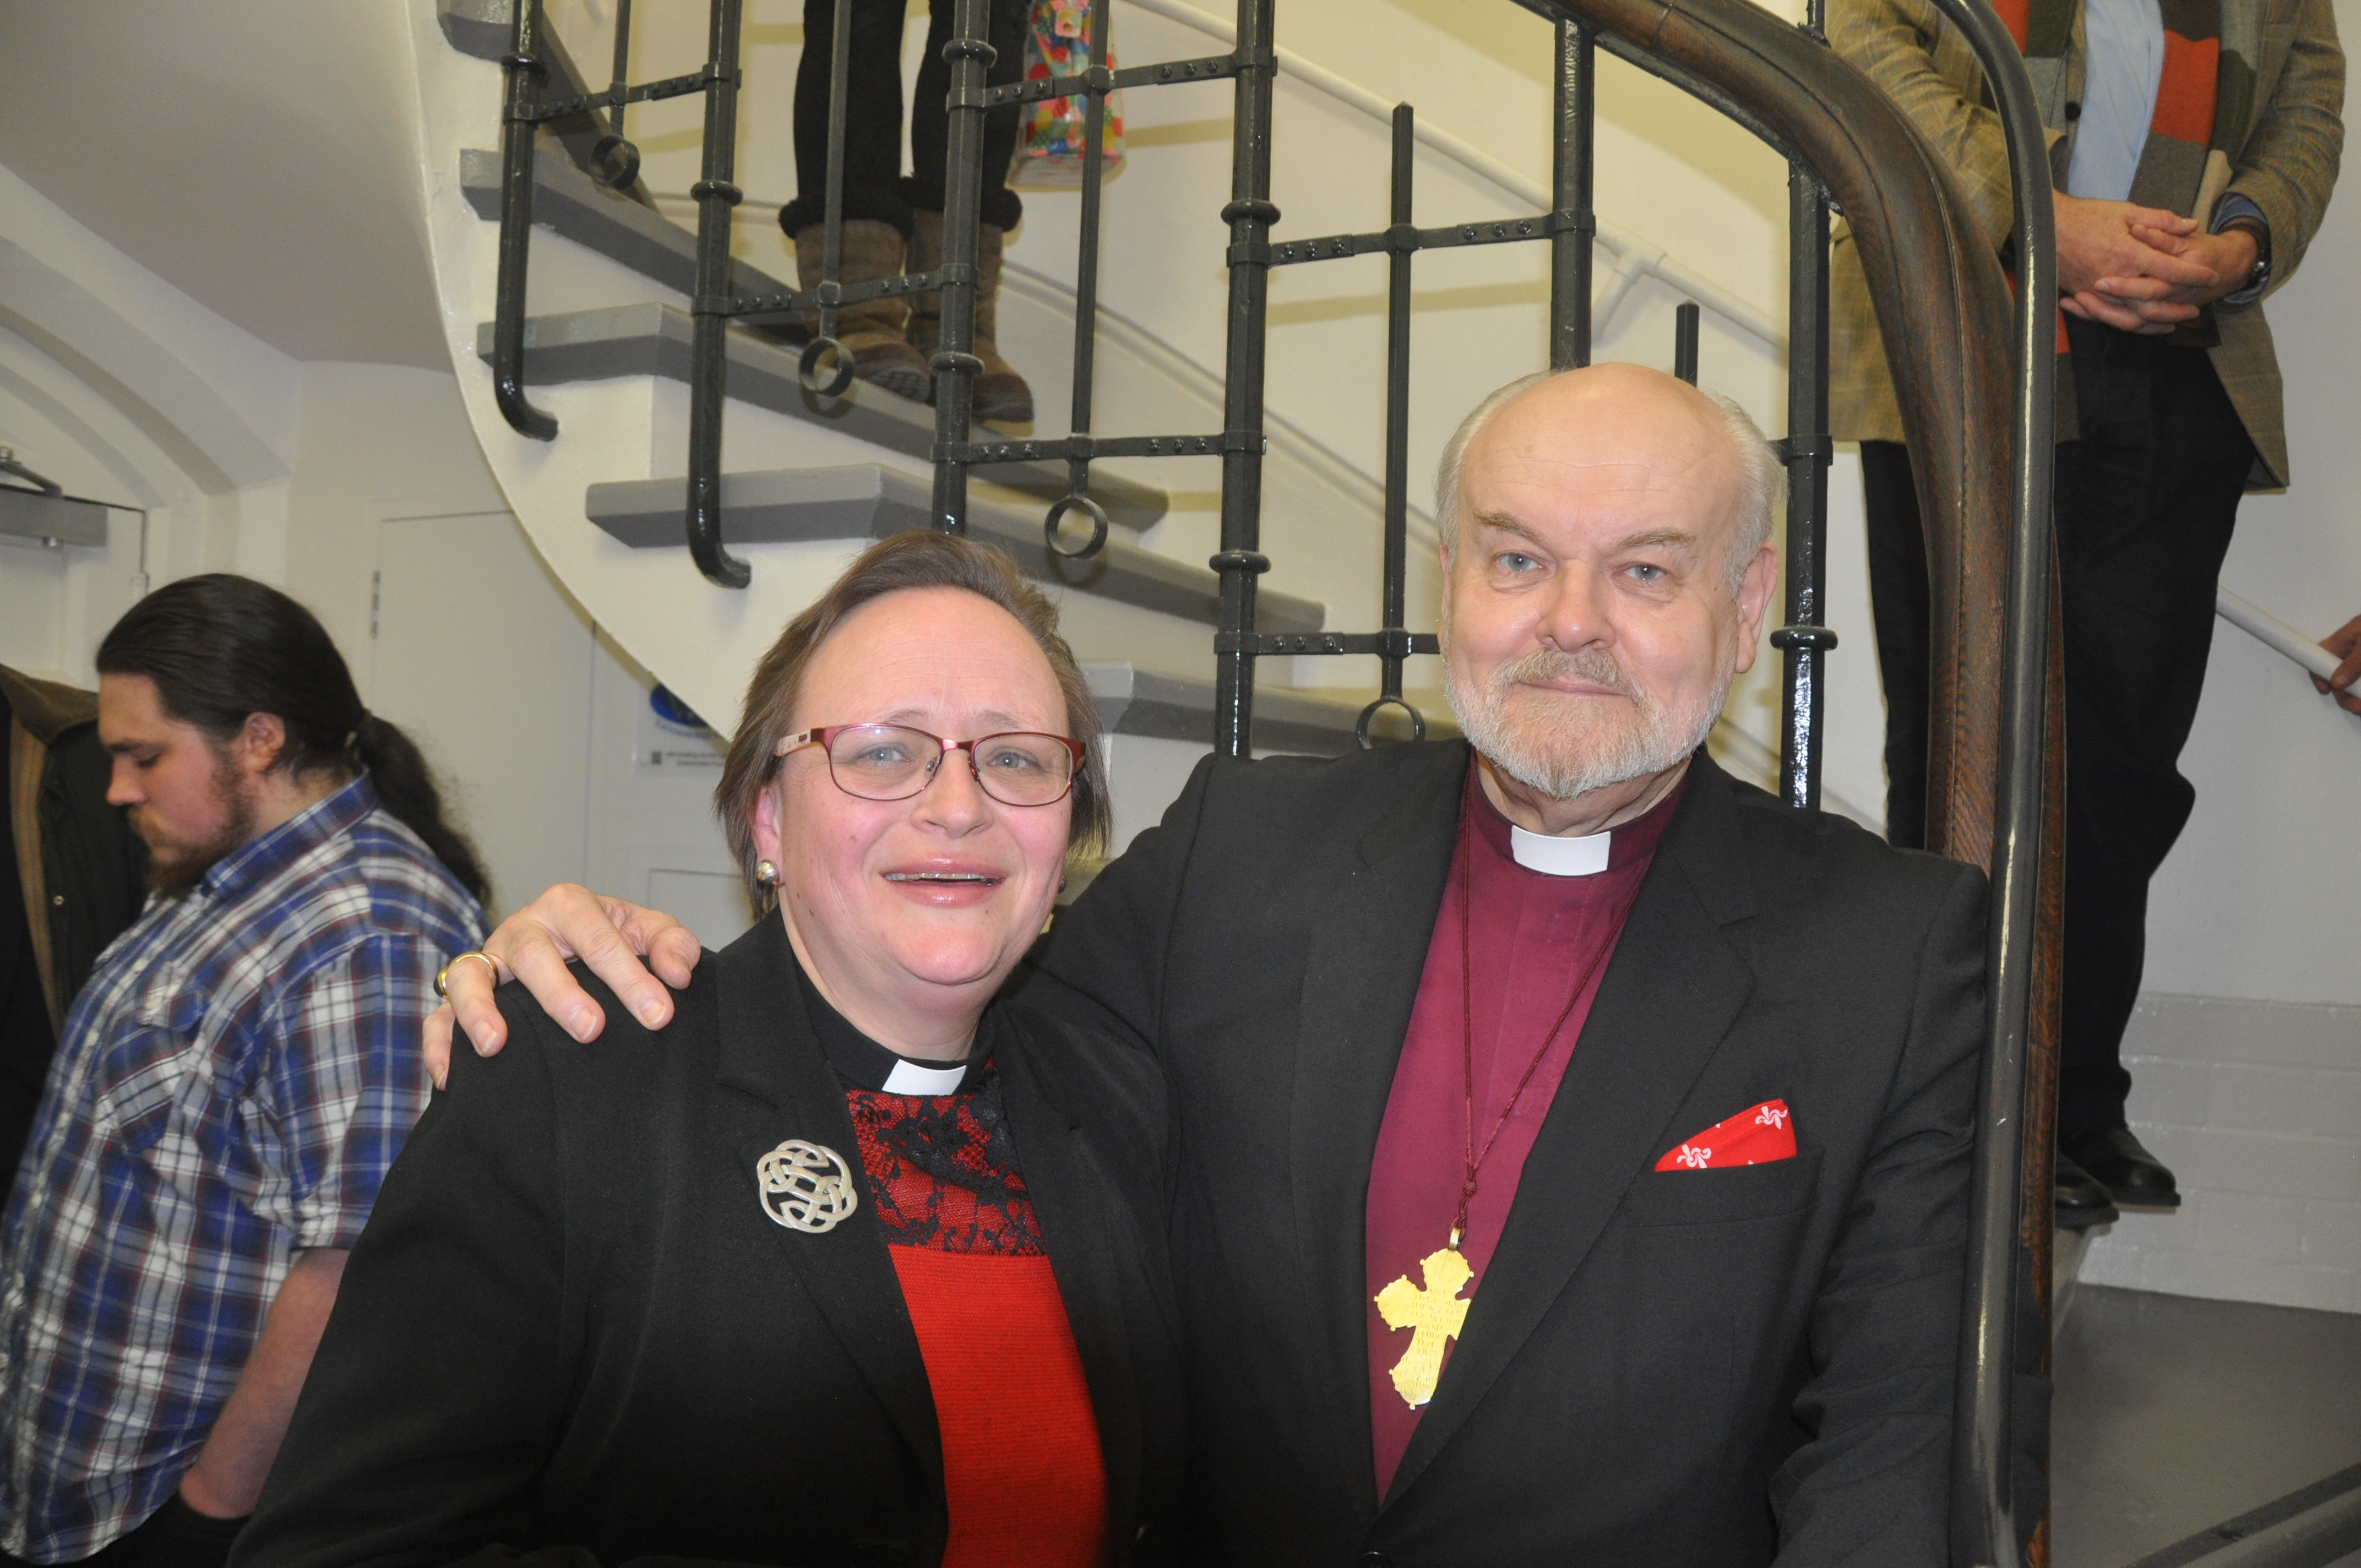 Lis Goddard, Vicar of St James the Less, Pimlico, with Rt Revd  Richard Chartres, Bishop of London